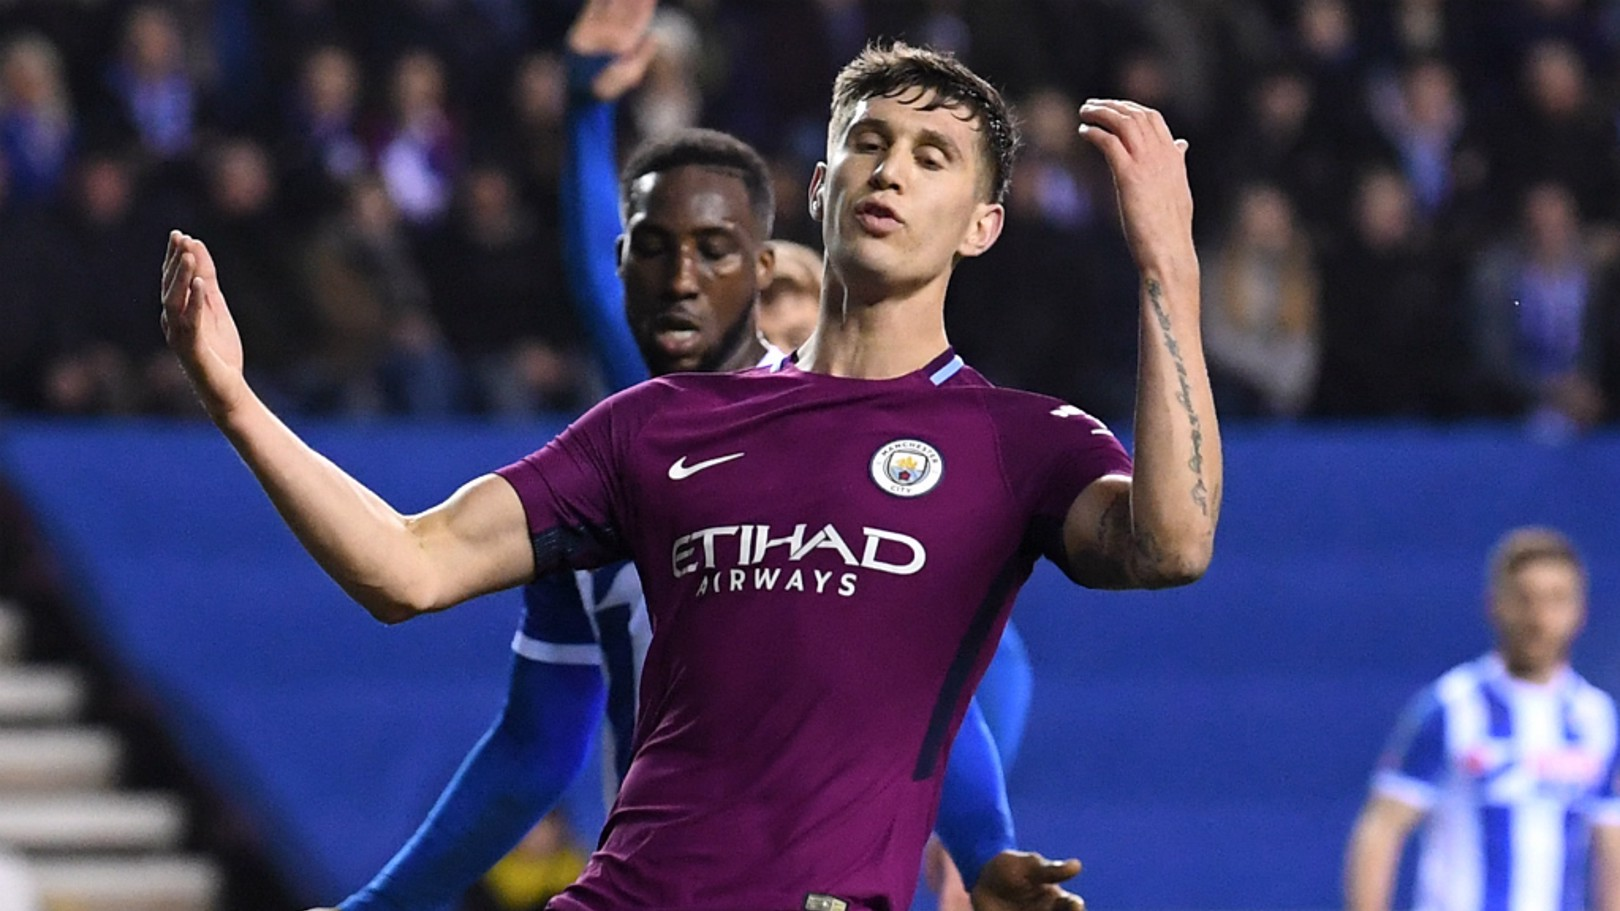 HEARTBREAK: John Stones reacts to City's FA Cup defeat at Wigan...